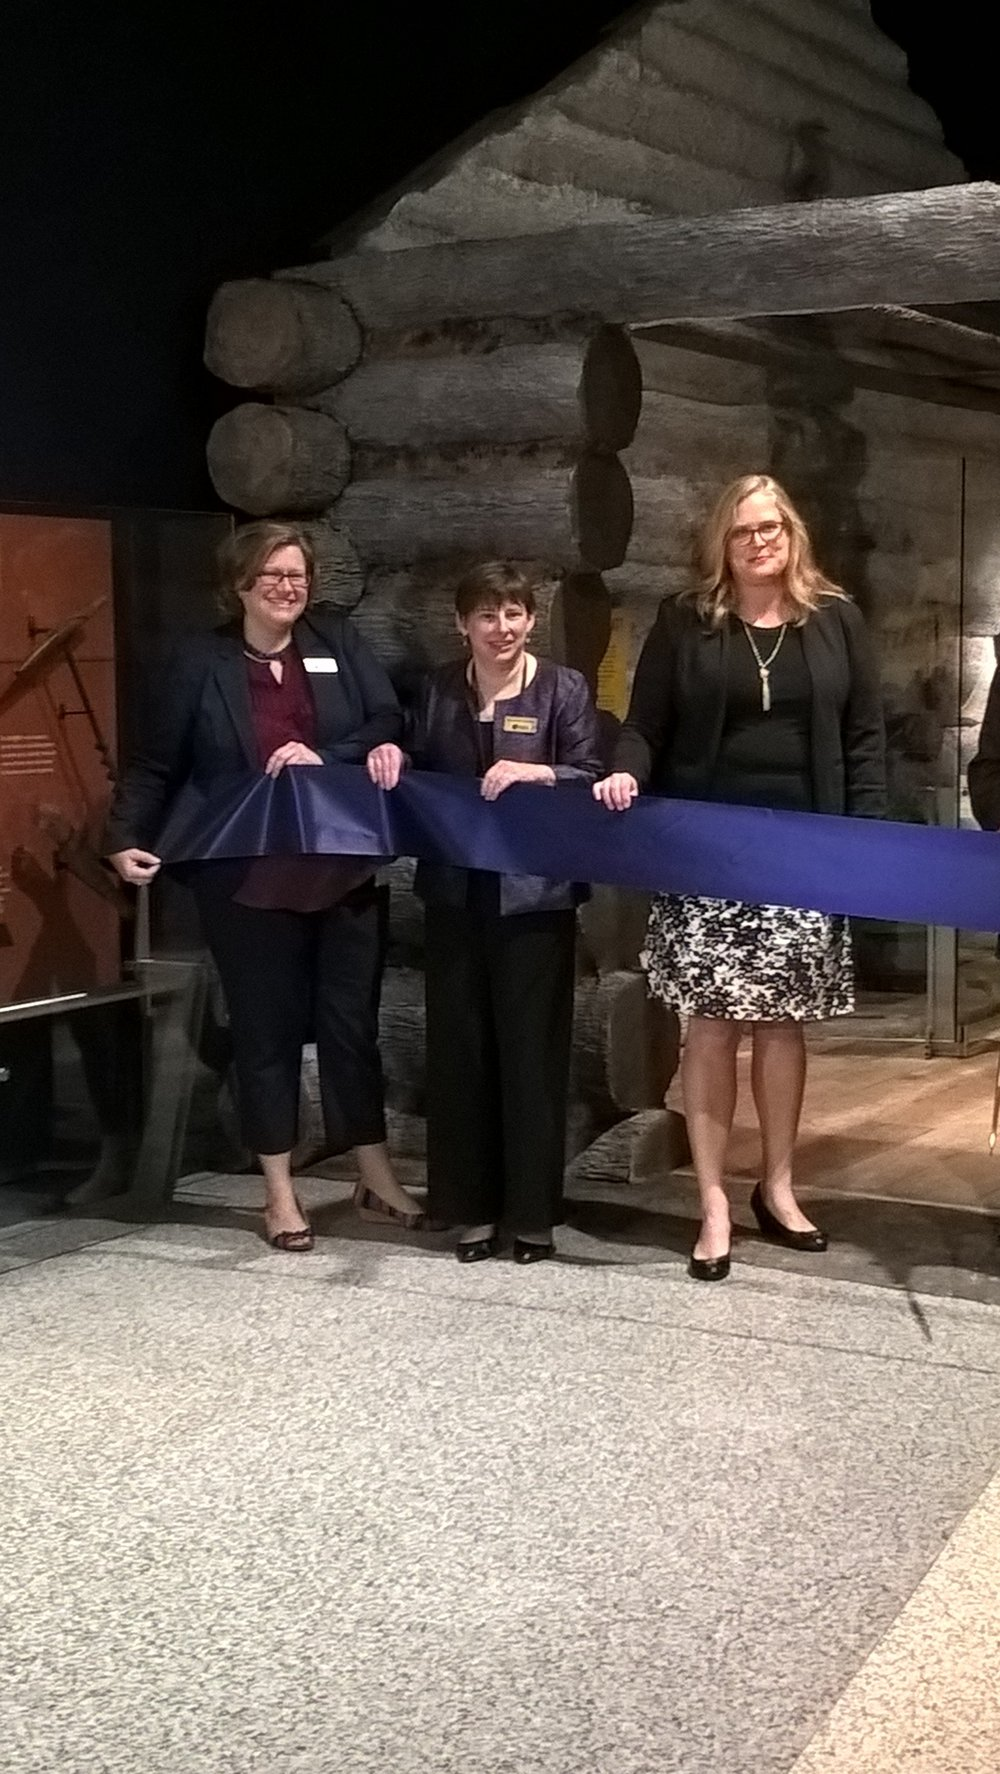 The Indiana State Museum kicked off their INVision Campaign Nov. 2 with press and stakeholder previews of the three revamped core galleries.